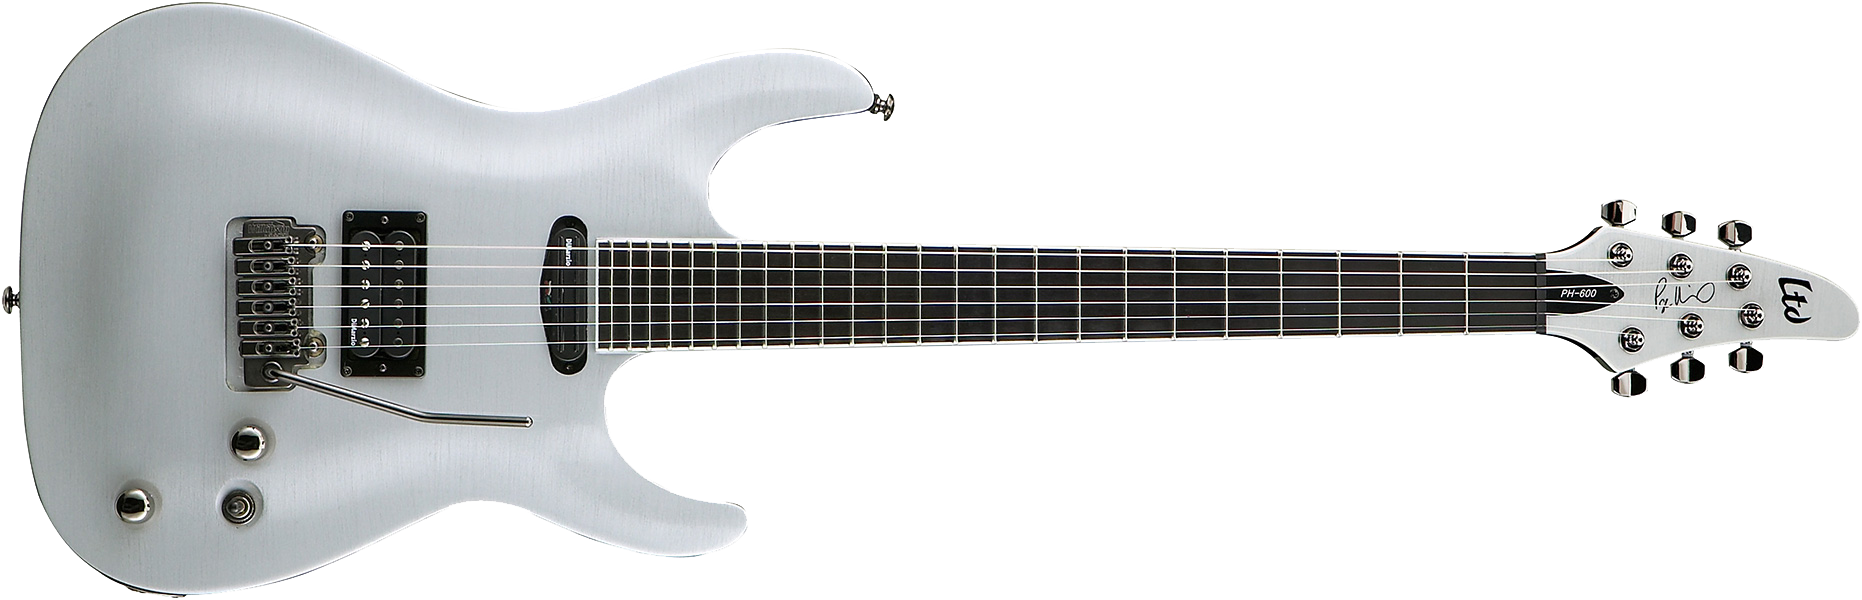 Electric png in high. Clipart guitar gray